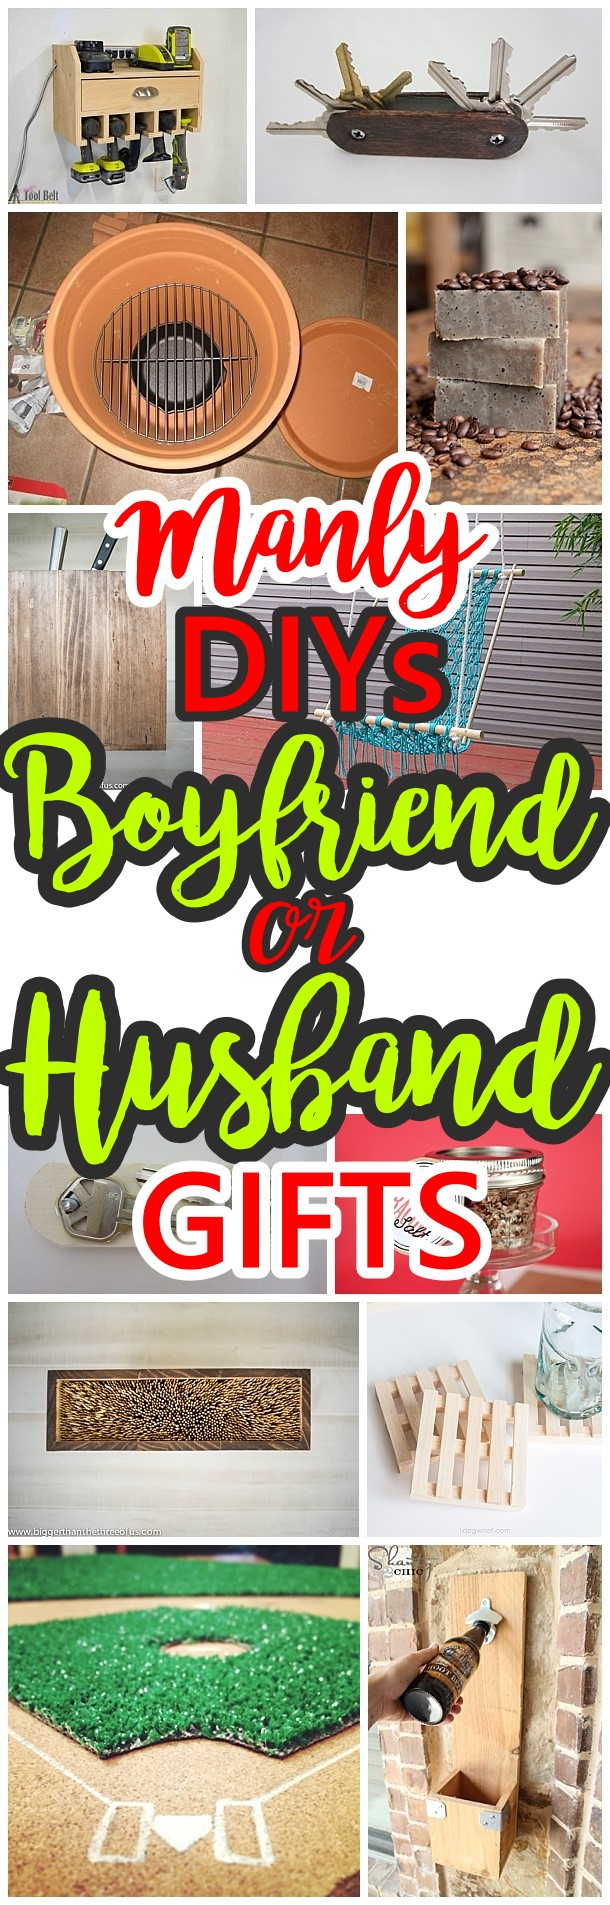 Small christmas gift ideas for male coworkers